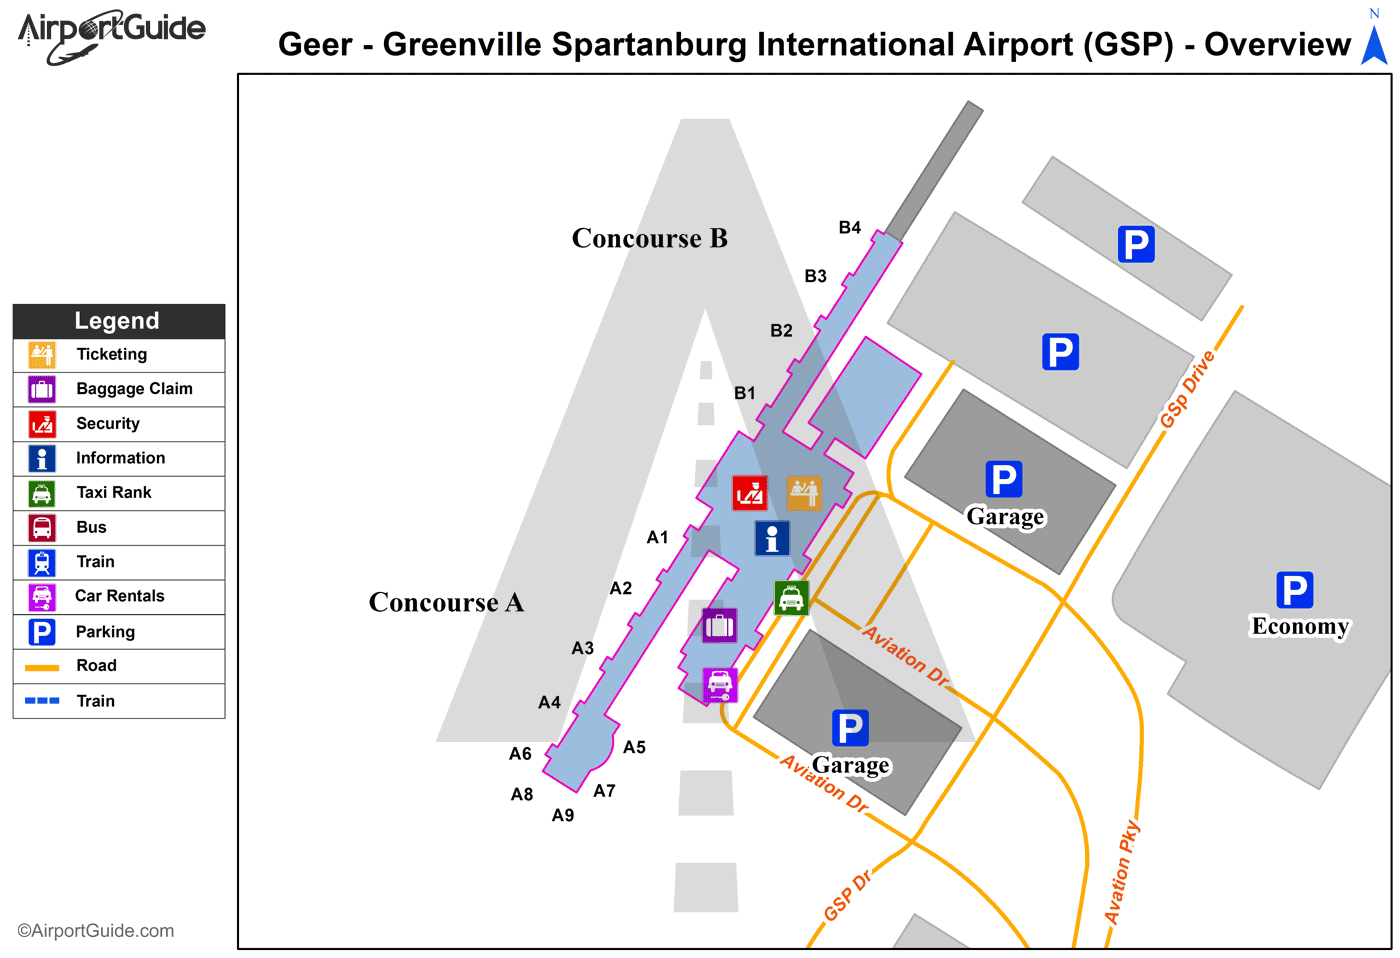 Greer - Greenville Spartanburg International (GSP) Airport ... on map of greenville county, map of south carolina, map greenville fl, map of georgia lawrenceville ga, map charlotte nc, map of greenville tx, map indian land nc, map of greenville spartanburg, map of nc, map atlanta ga, map of greenville memorial hospital, map greenville de, map of augusta and aiken, map greenville ms, map of greenville me, map of east tennessee and north carolina, map from ny to nc, map of downtown greenville, map san mateo county flood map, map of greenville maine,